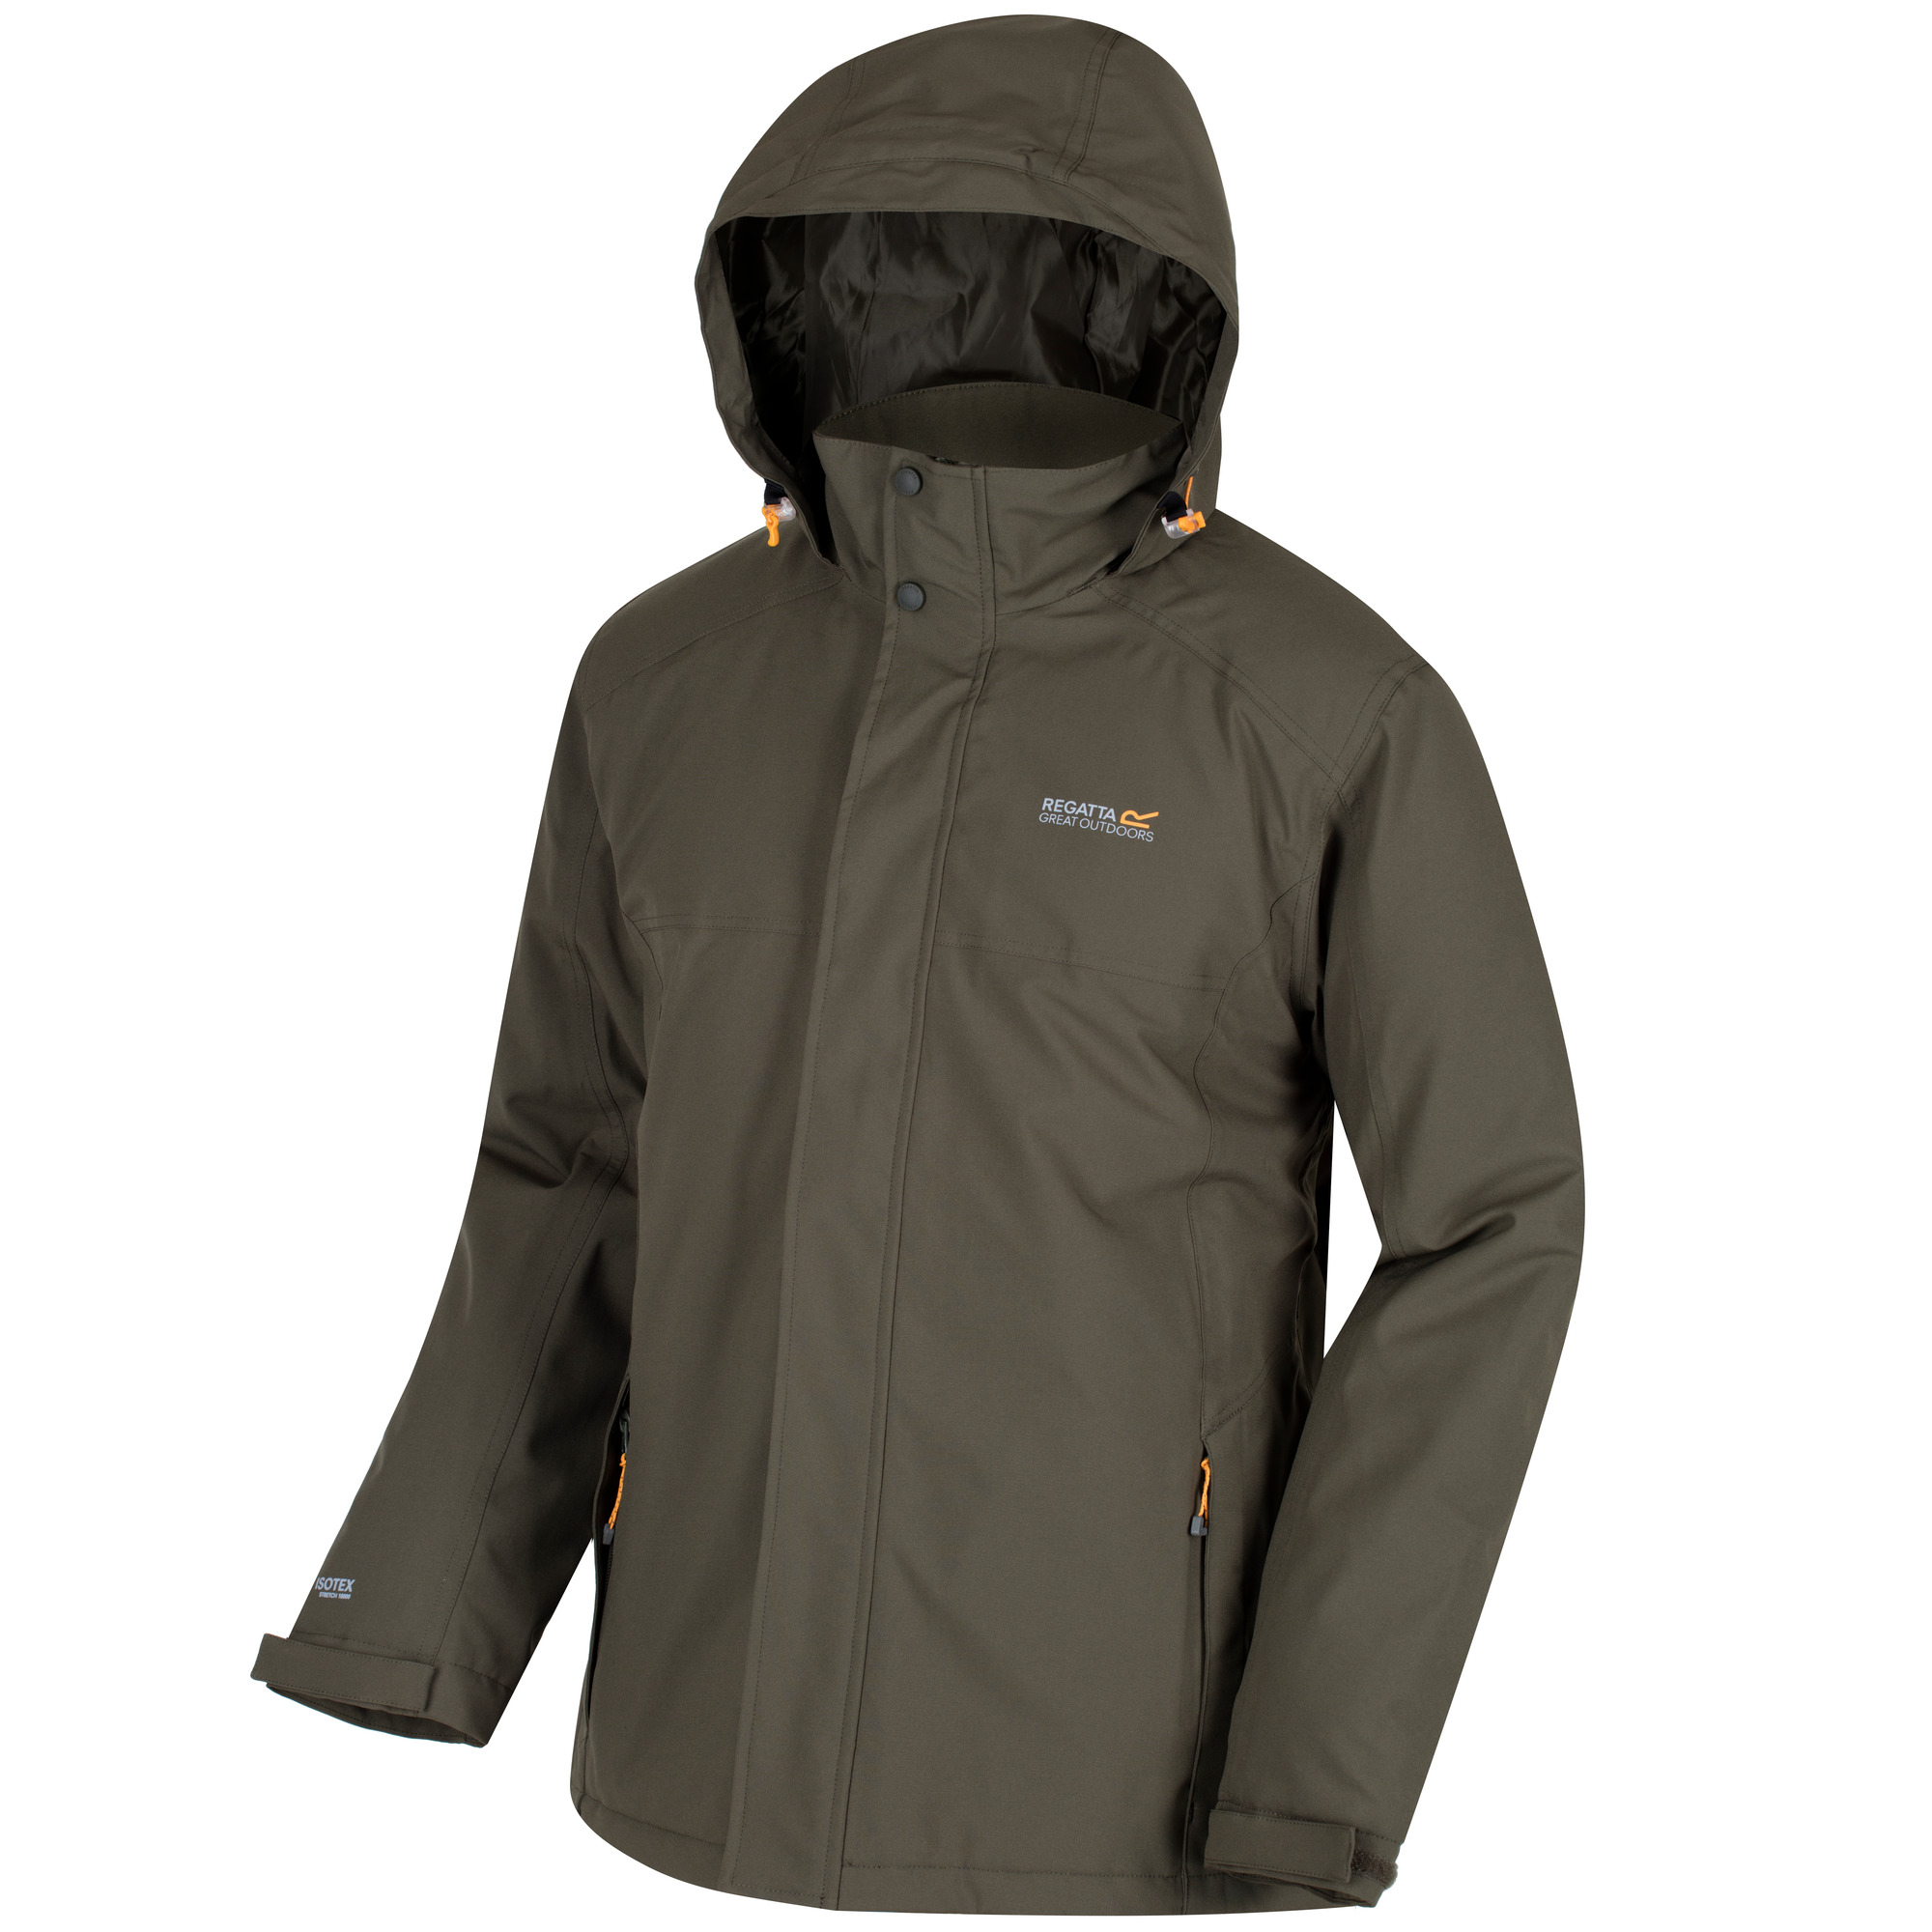 Regatta Great Outdoors Mens Hackber Waterproof Jacket (RG2150) | eBay